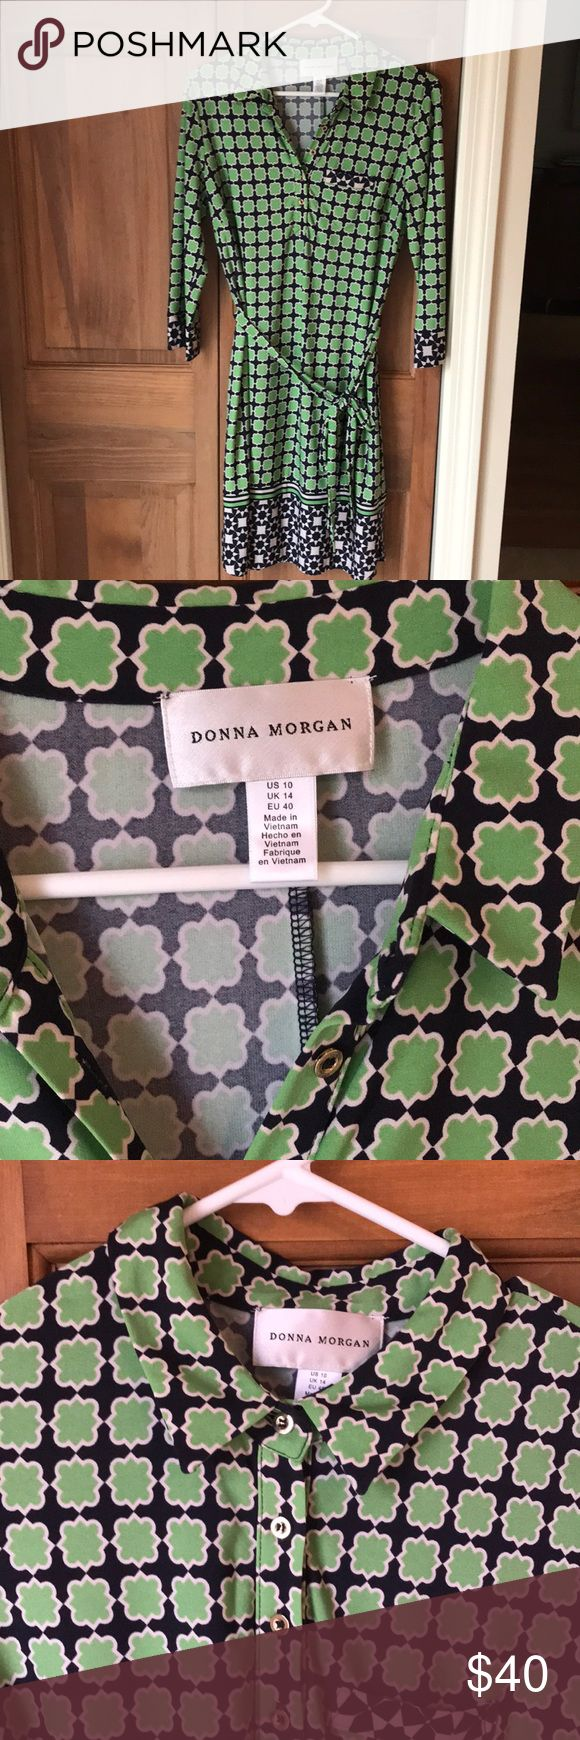 Donna Morgan pattern dress Beautiful 3/4 sleeve dress to wear to work. Worn once to a business meeting with nude flats. Size 10 but fits more like an 8. Super cute pattern and gold buttons that can be worn unbuttoned or buttoned up.  All of my items are in excellent condition from my smoke-free, borderline OCD clean home 😂 Donna Morgan Dresses Long Sleeve